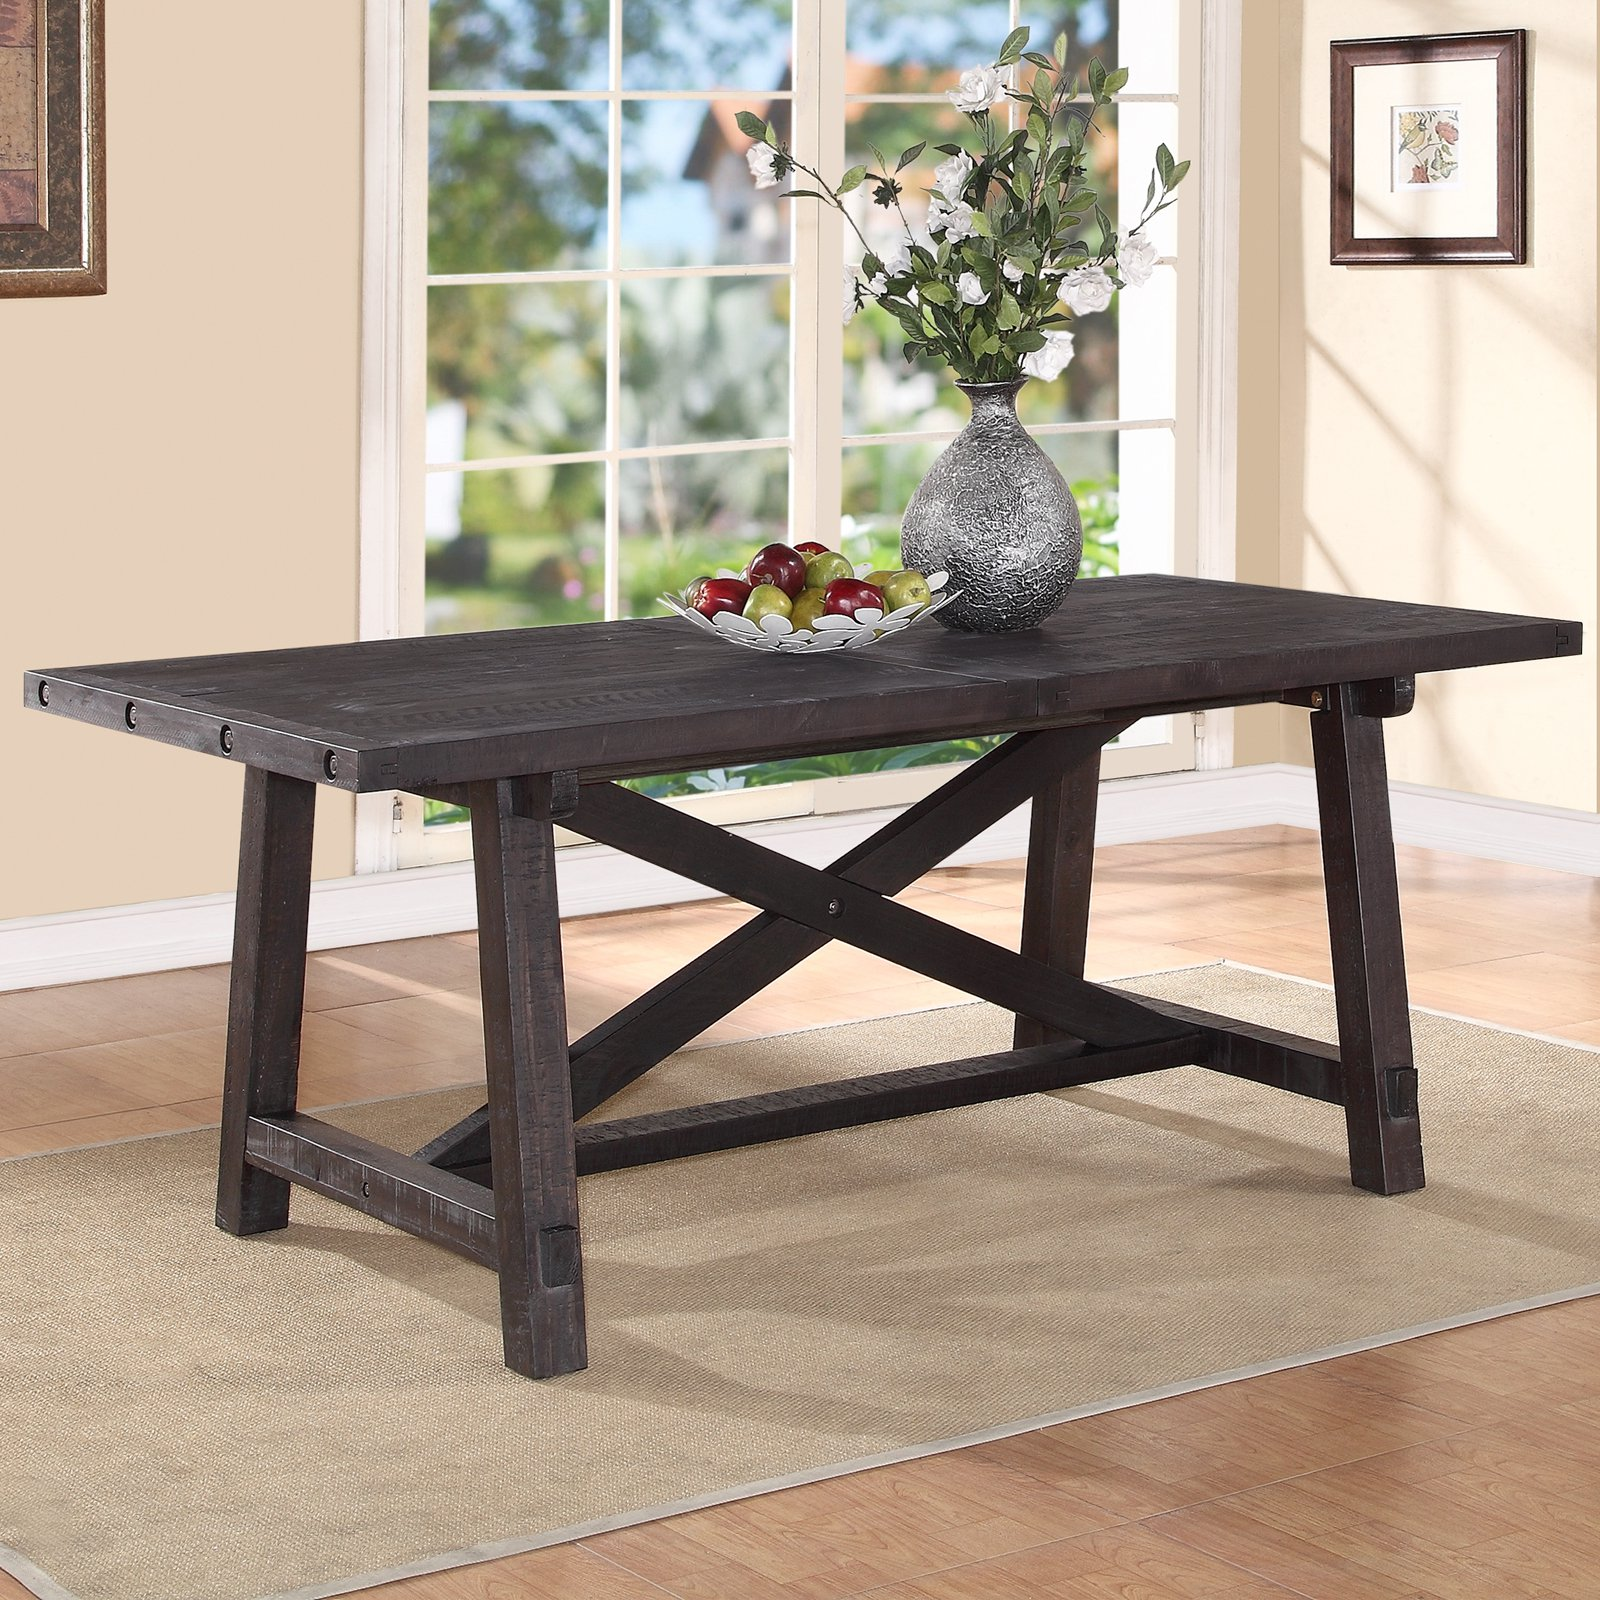 Modus Yosemite Solid Wood Rectangular Extension Table   Cafe   Walmart.com